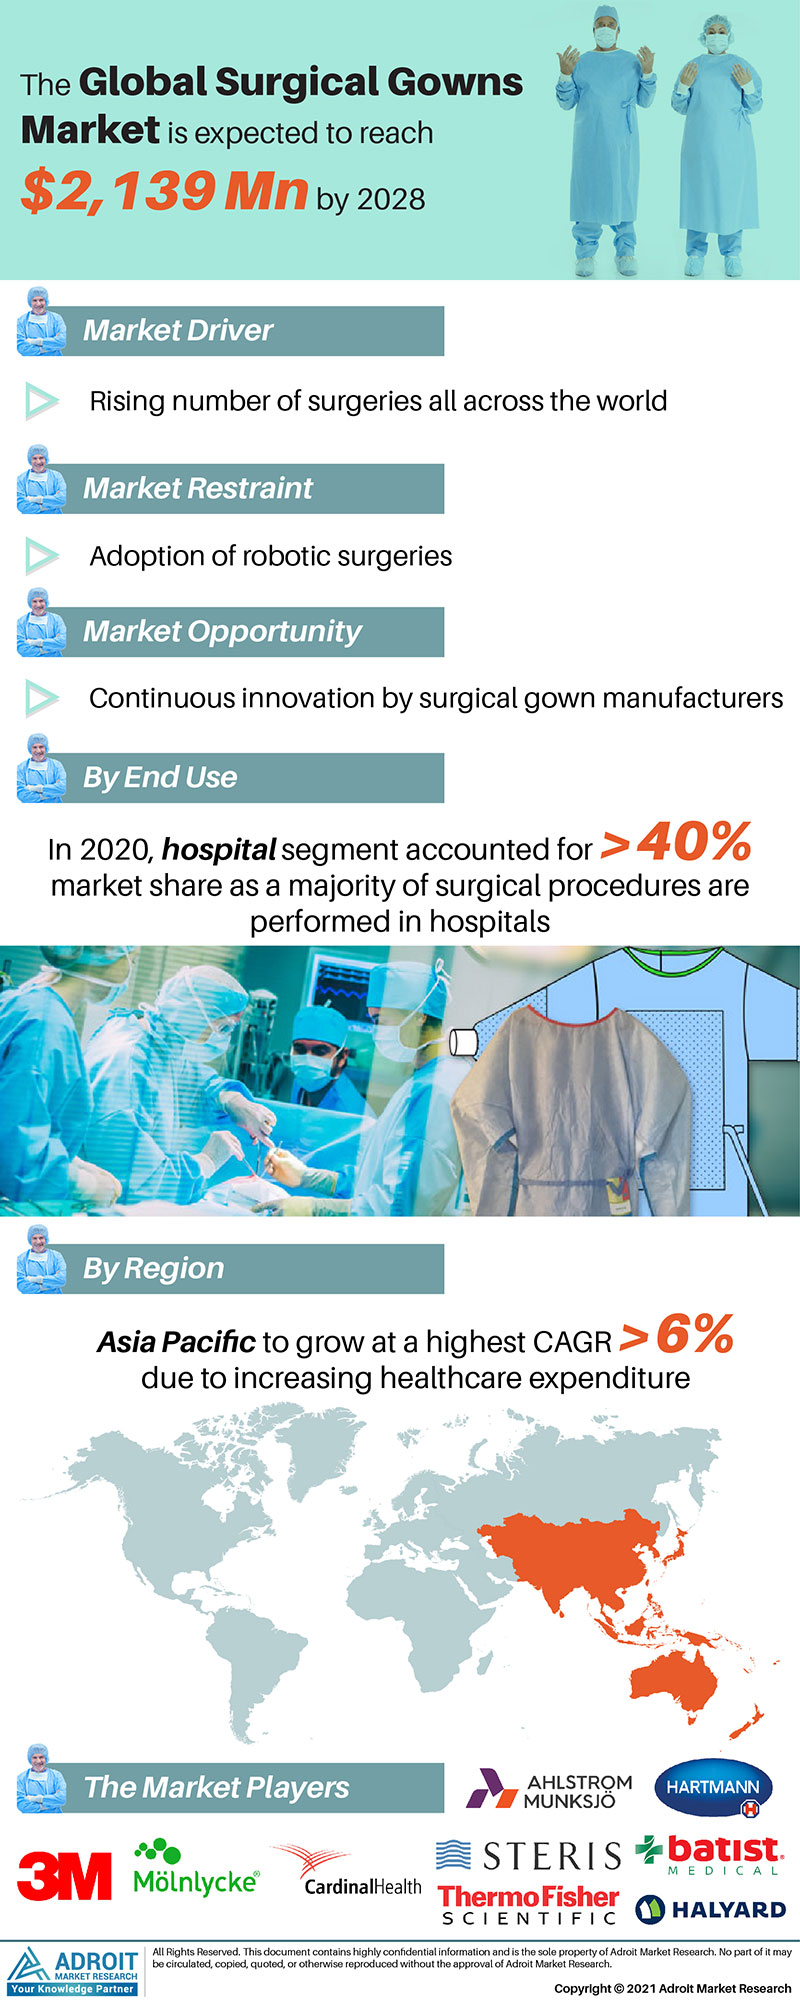 Surgical Gowns Market Trends and Forecasts Research Report